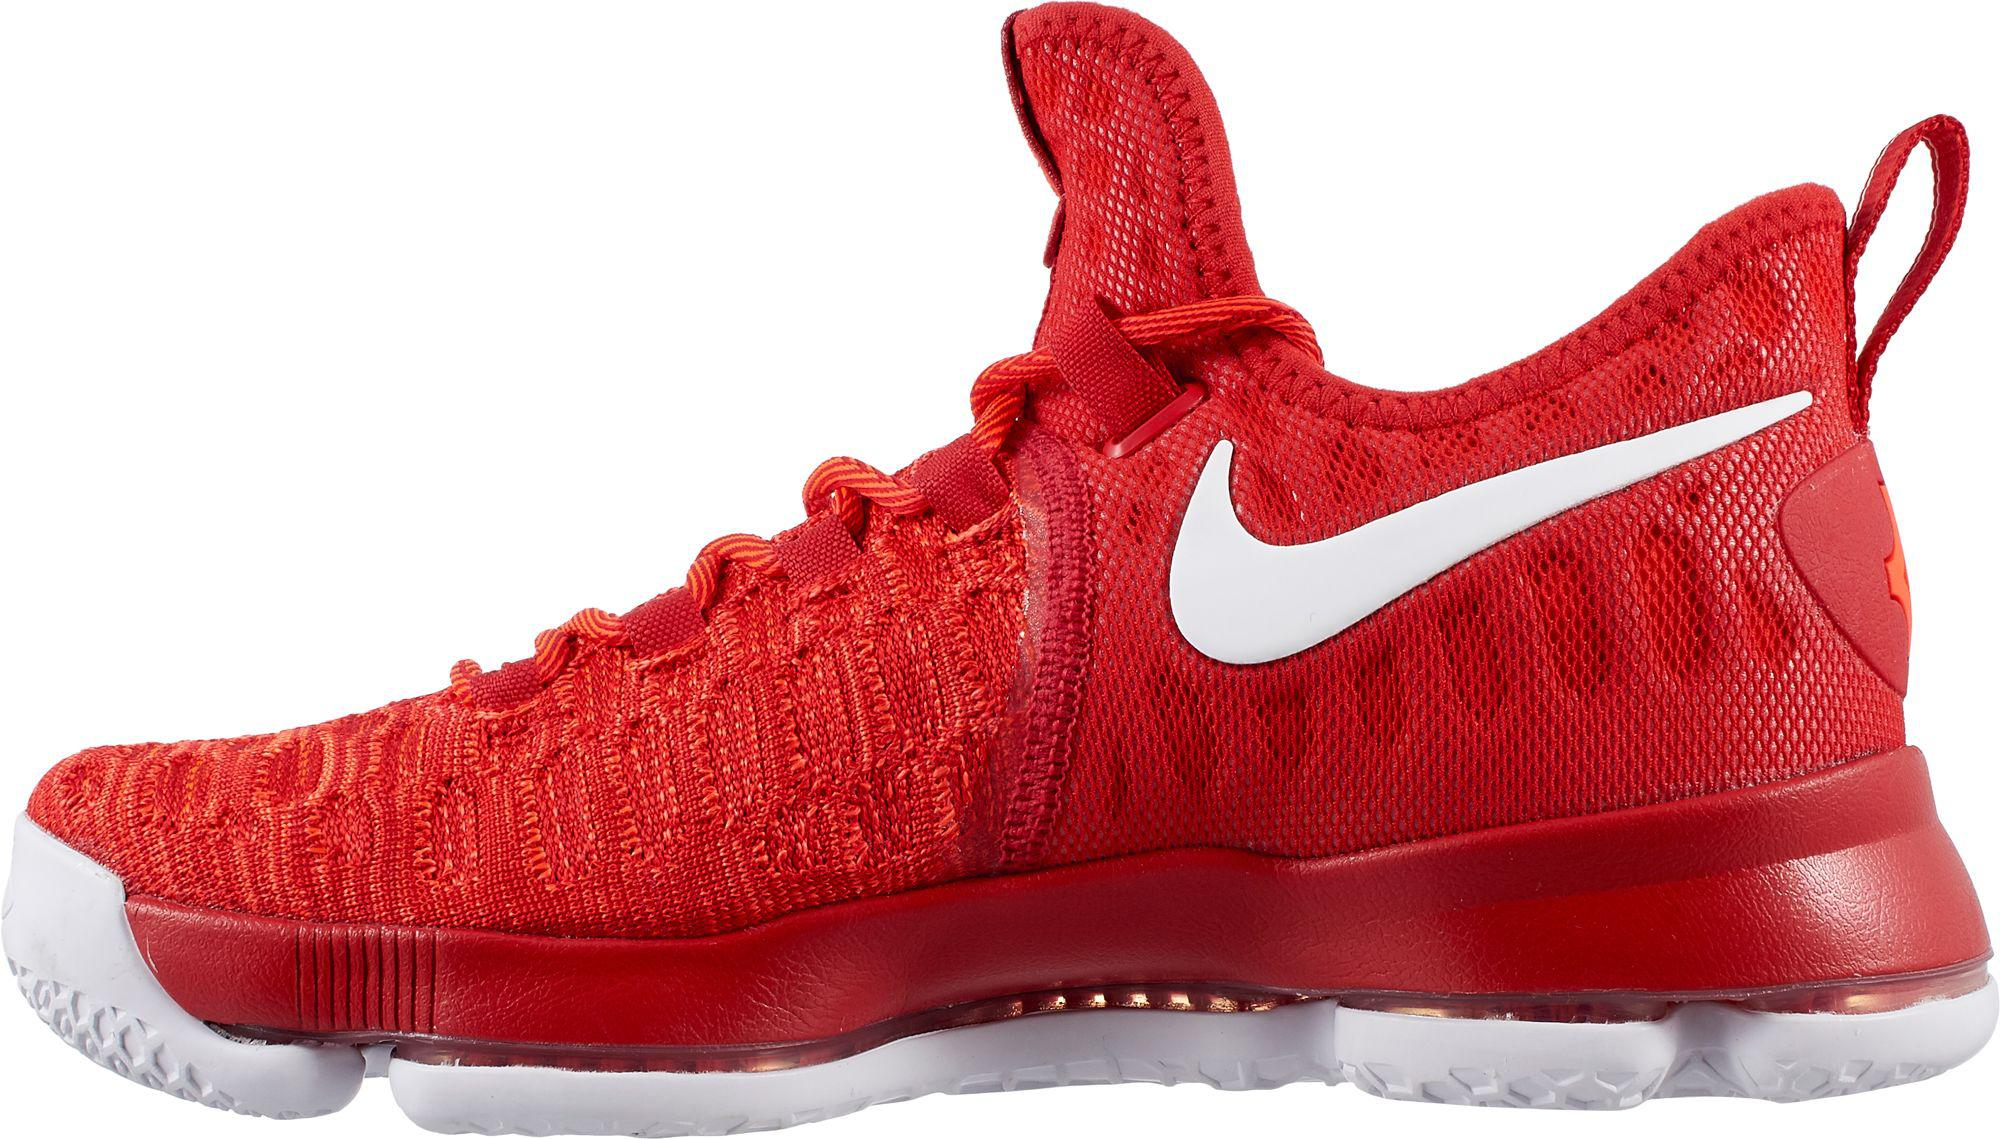 Nike - Red Zoom Kd 9 Basketball Shoes for Men - Lyst